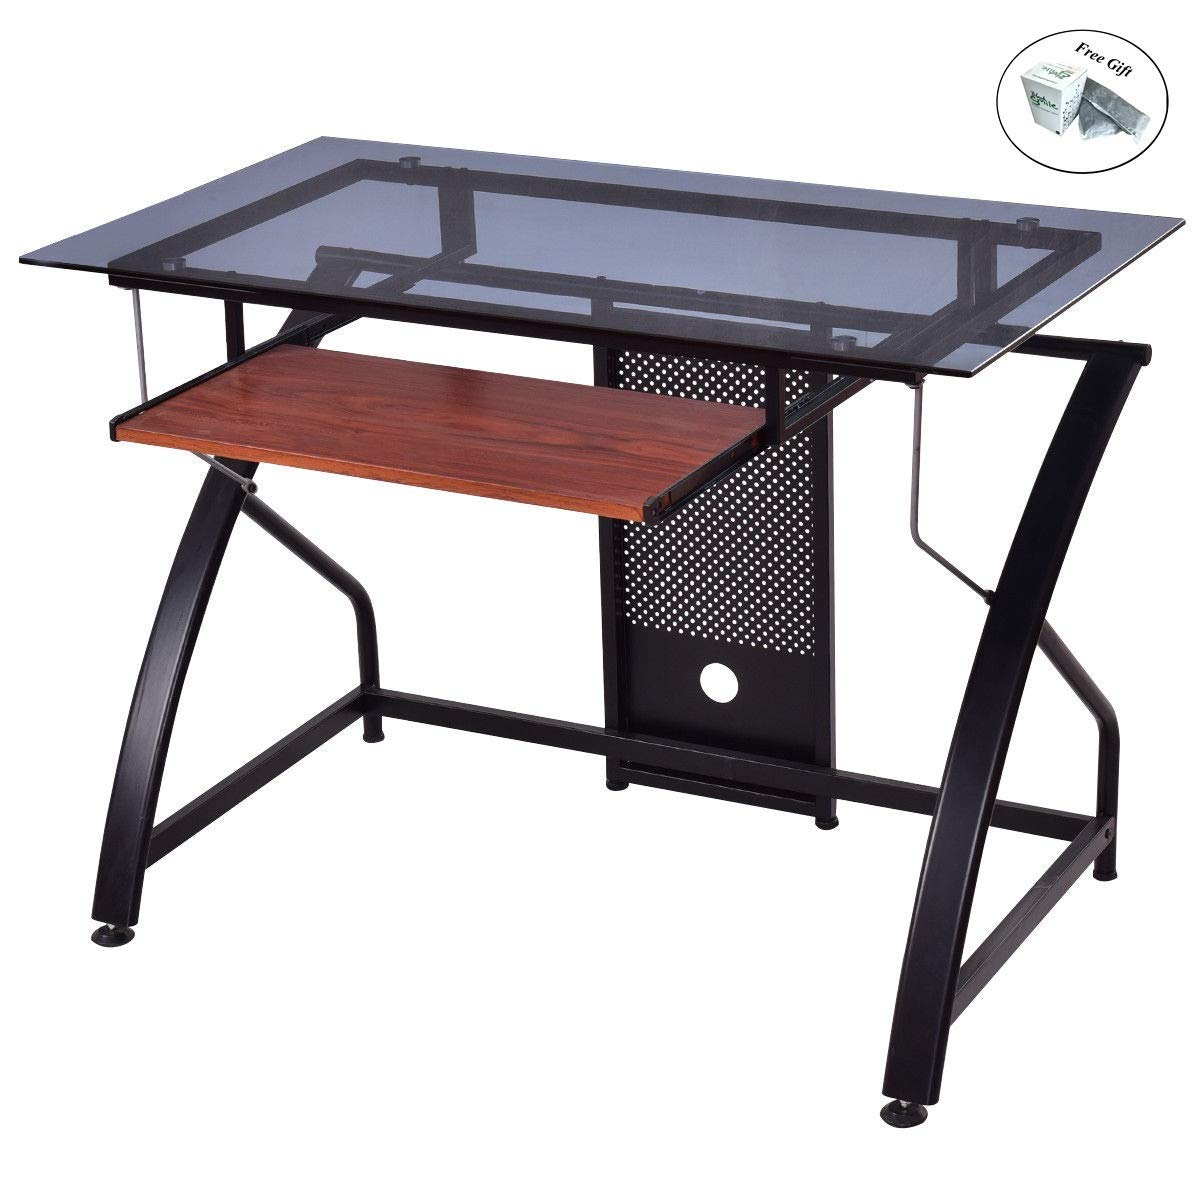 Computer Desk Glass Top PC Laptop Table Workstation Pull-Out Keyboard Tray Only by eight24hours